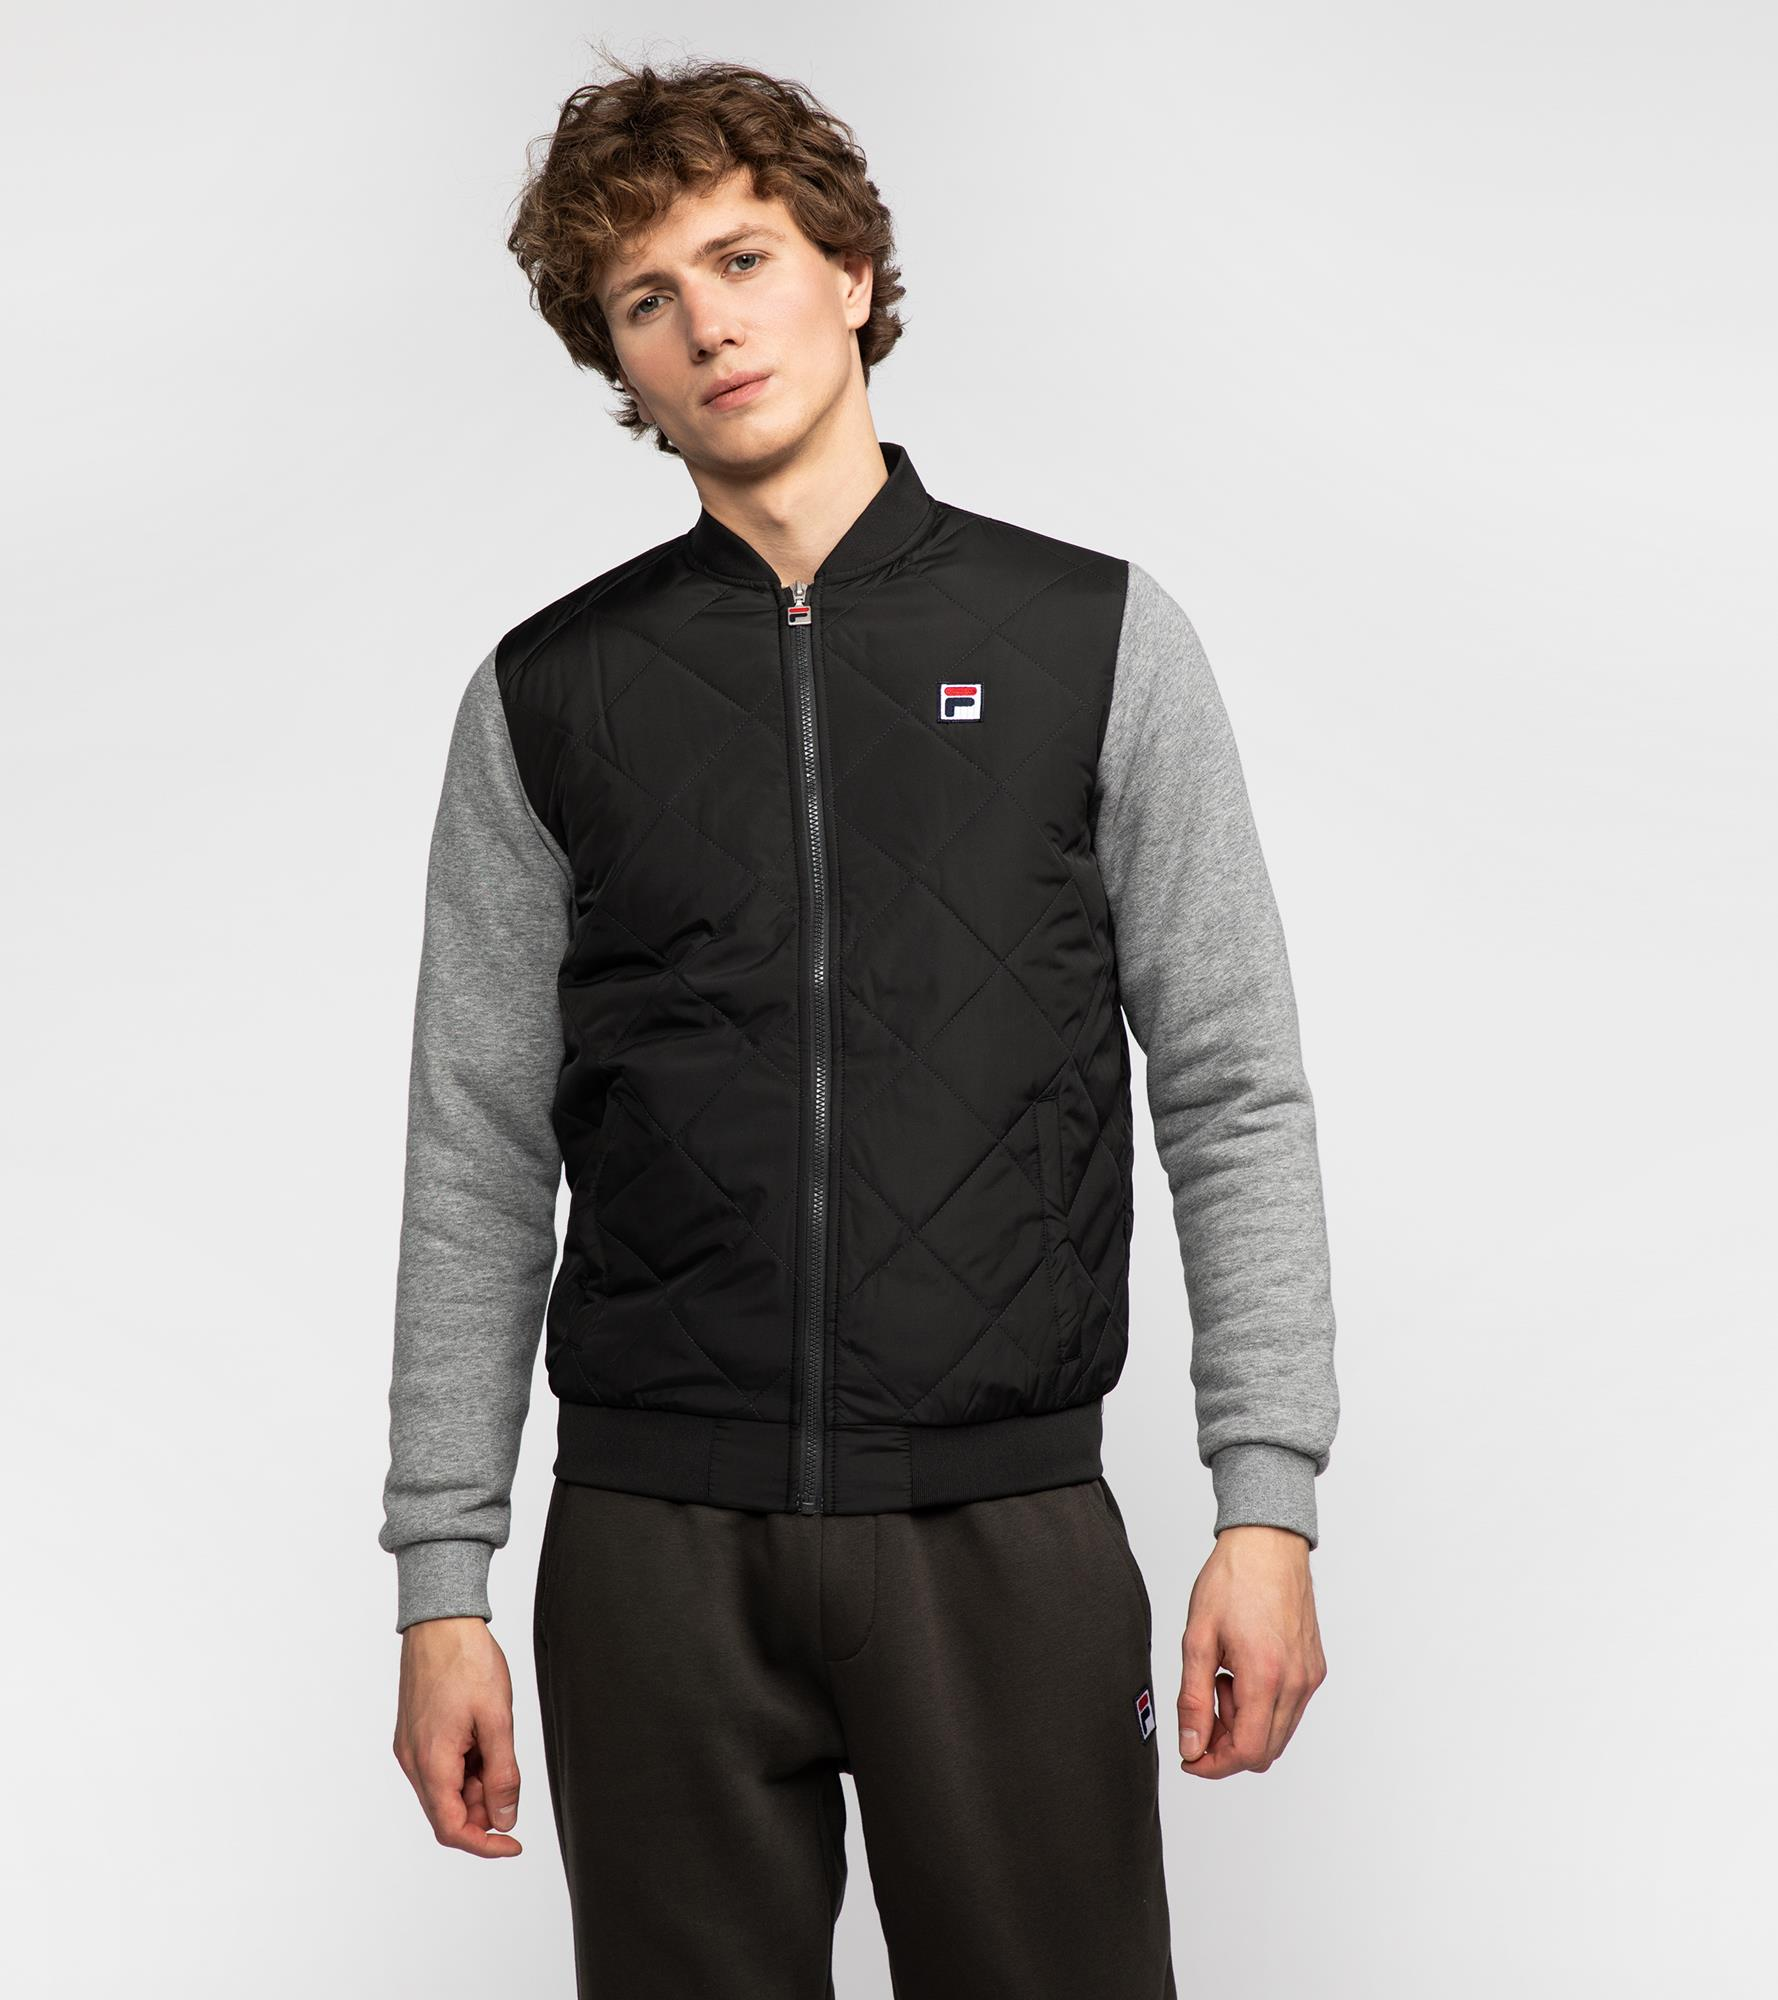 Толстовка Fila Mens jacket